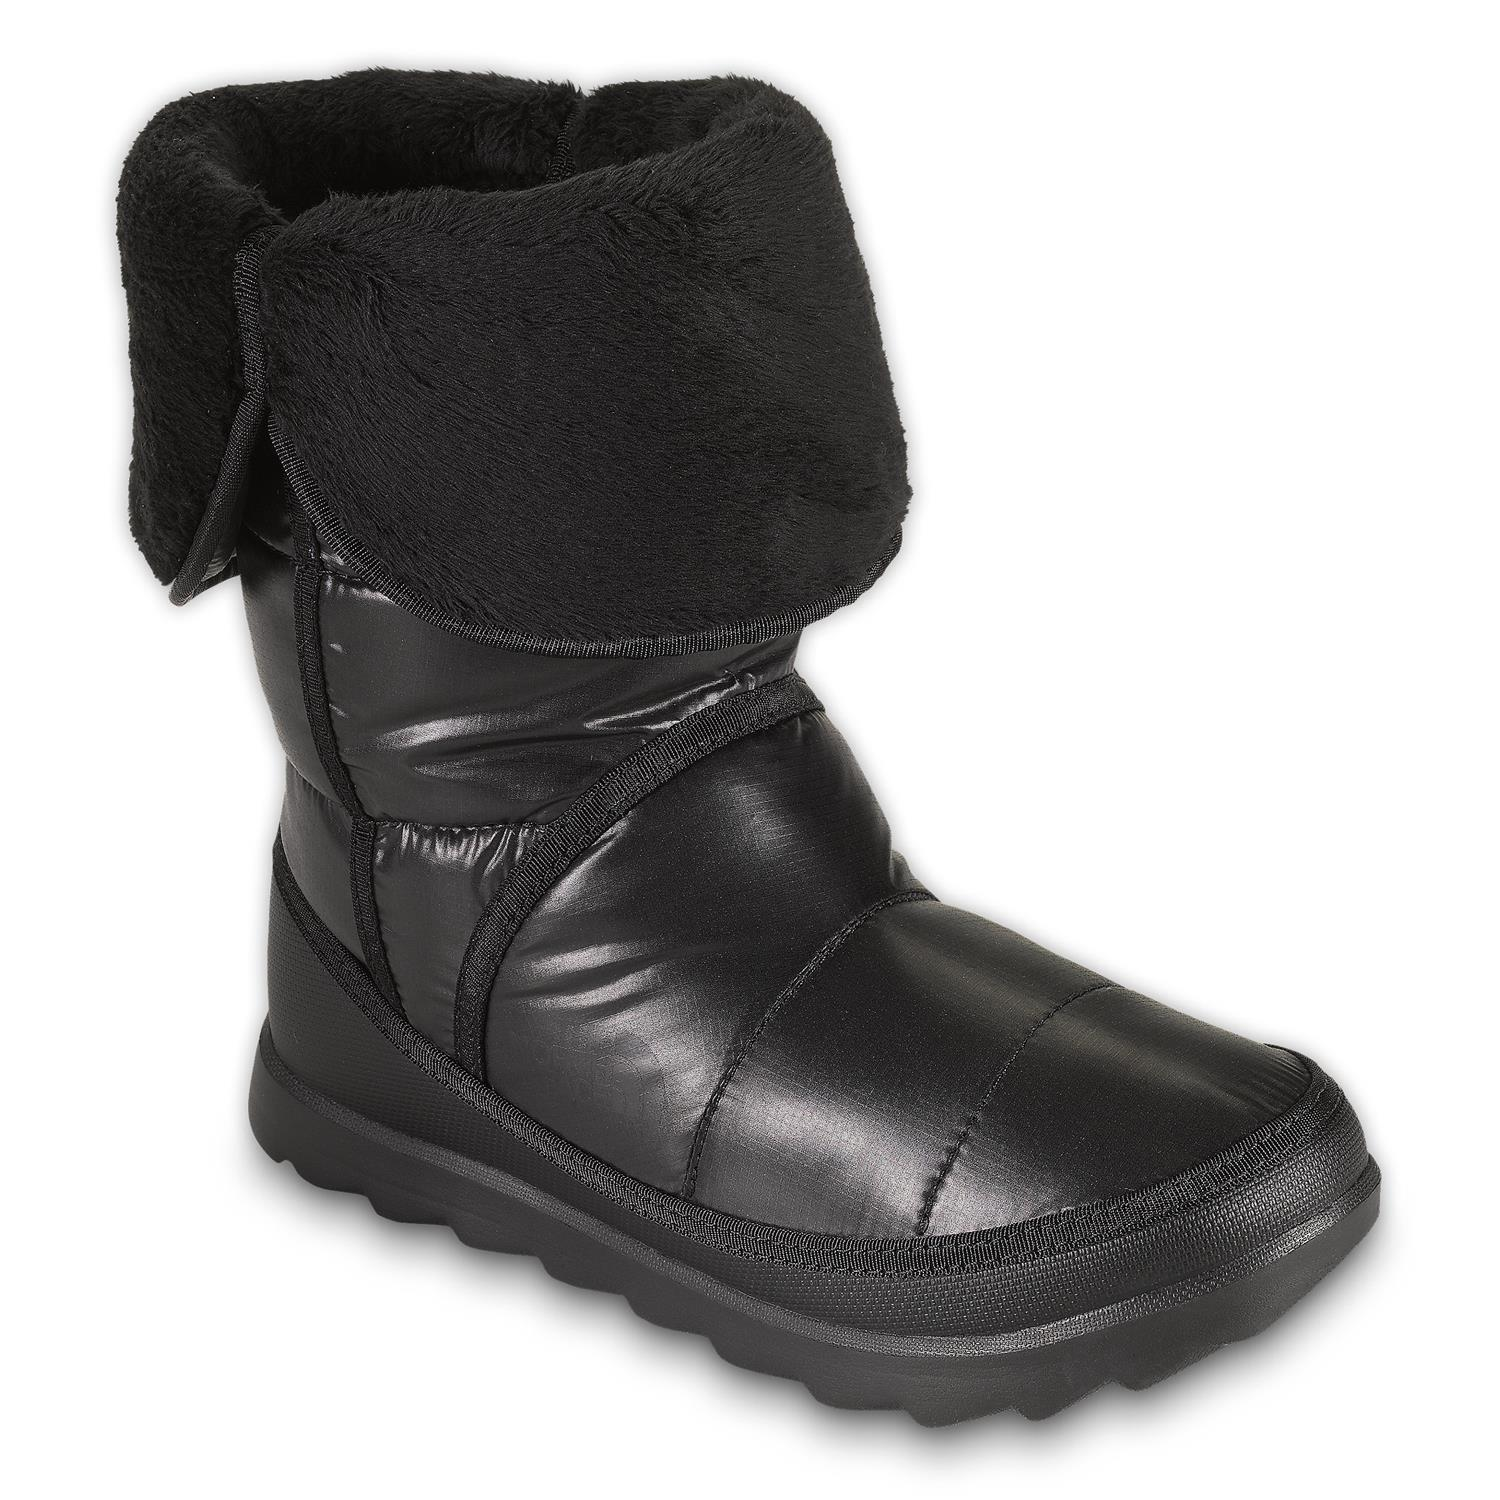 Ladies North Face Snow Boots Sale | NATIONAL SHERIFFS' ASSOCIATION